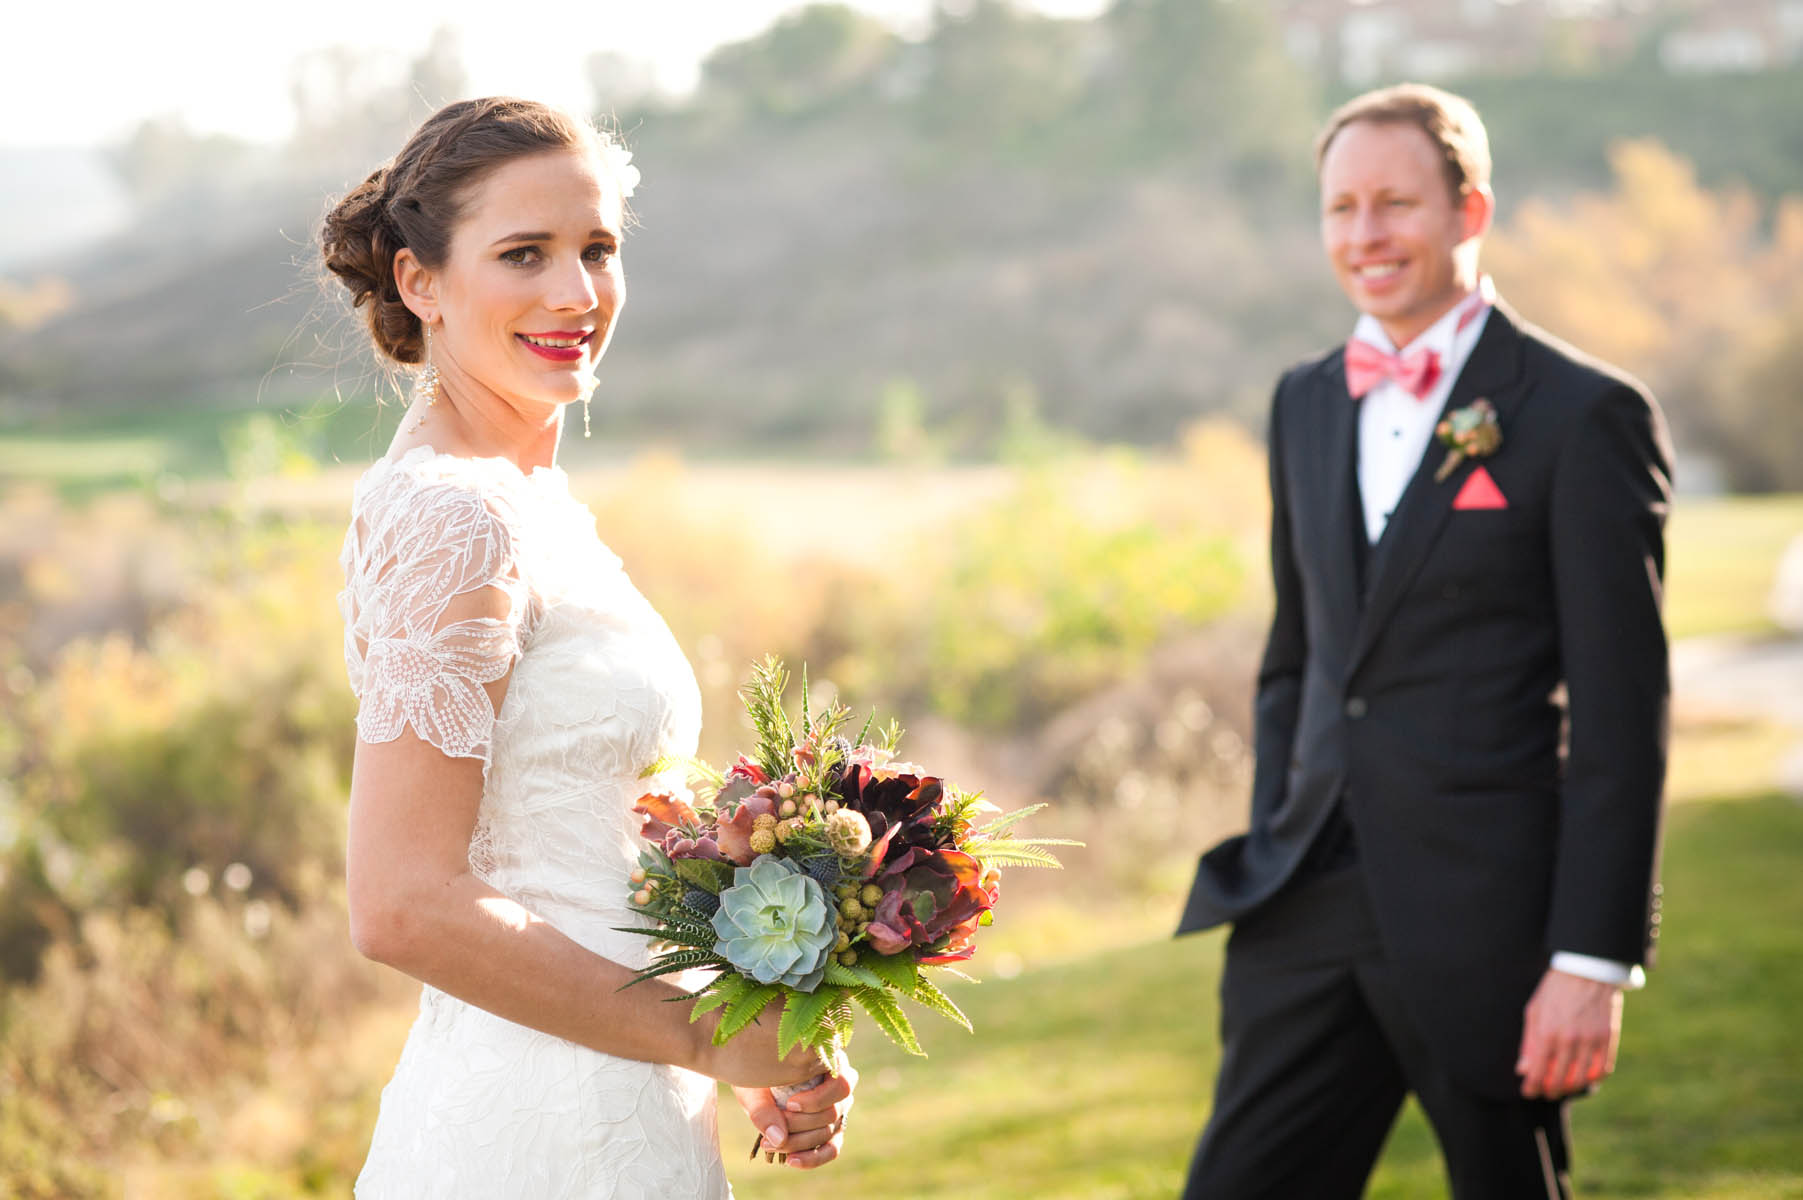 Beautiful light, beautiful bride at Strawberry Farms in Irvine!